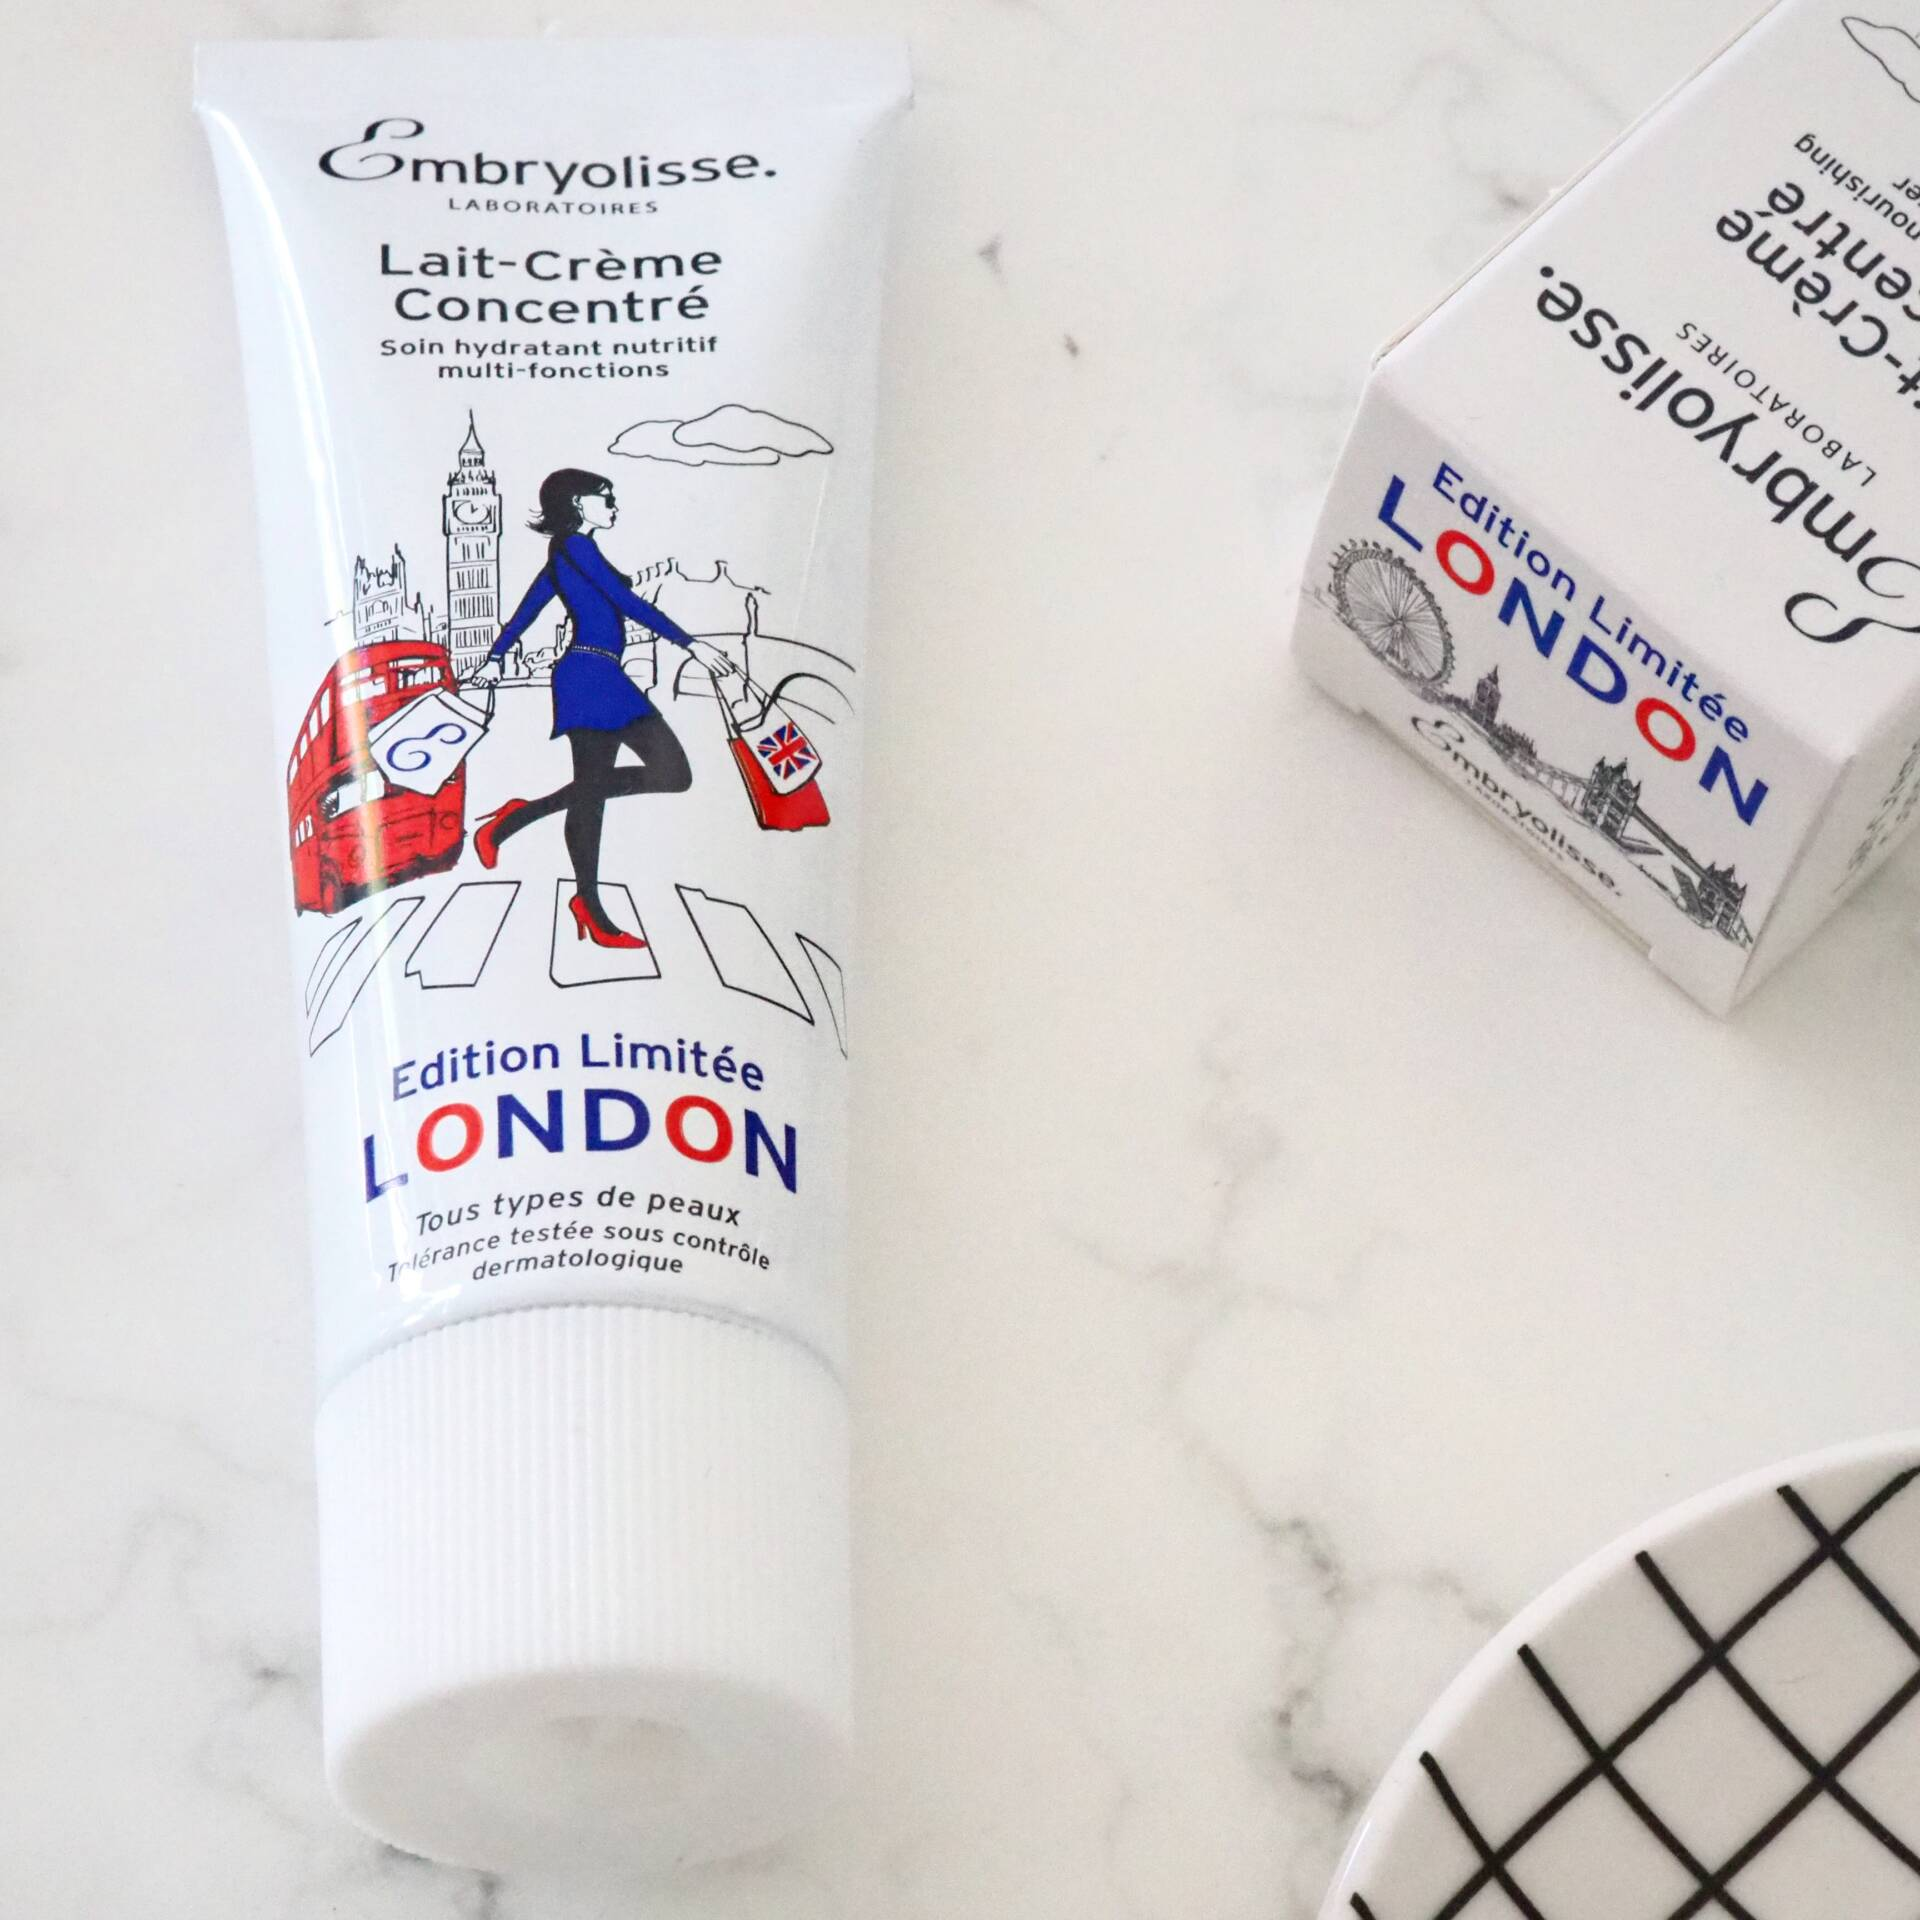 Embryolisse-Lait-Crème-Concentré-London-Limited-Edition